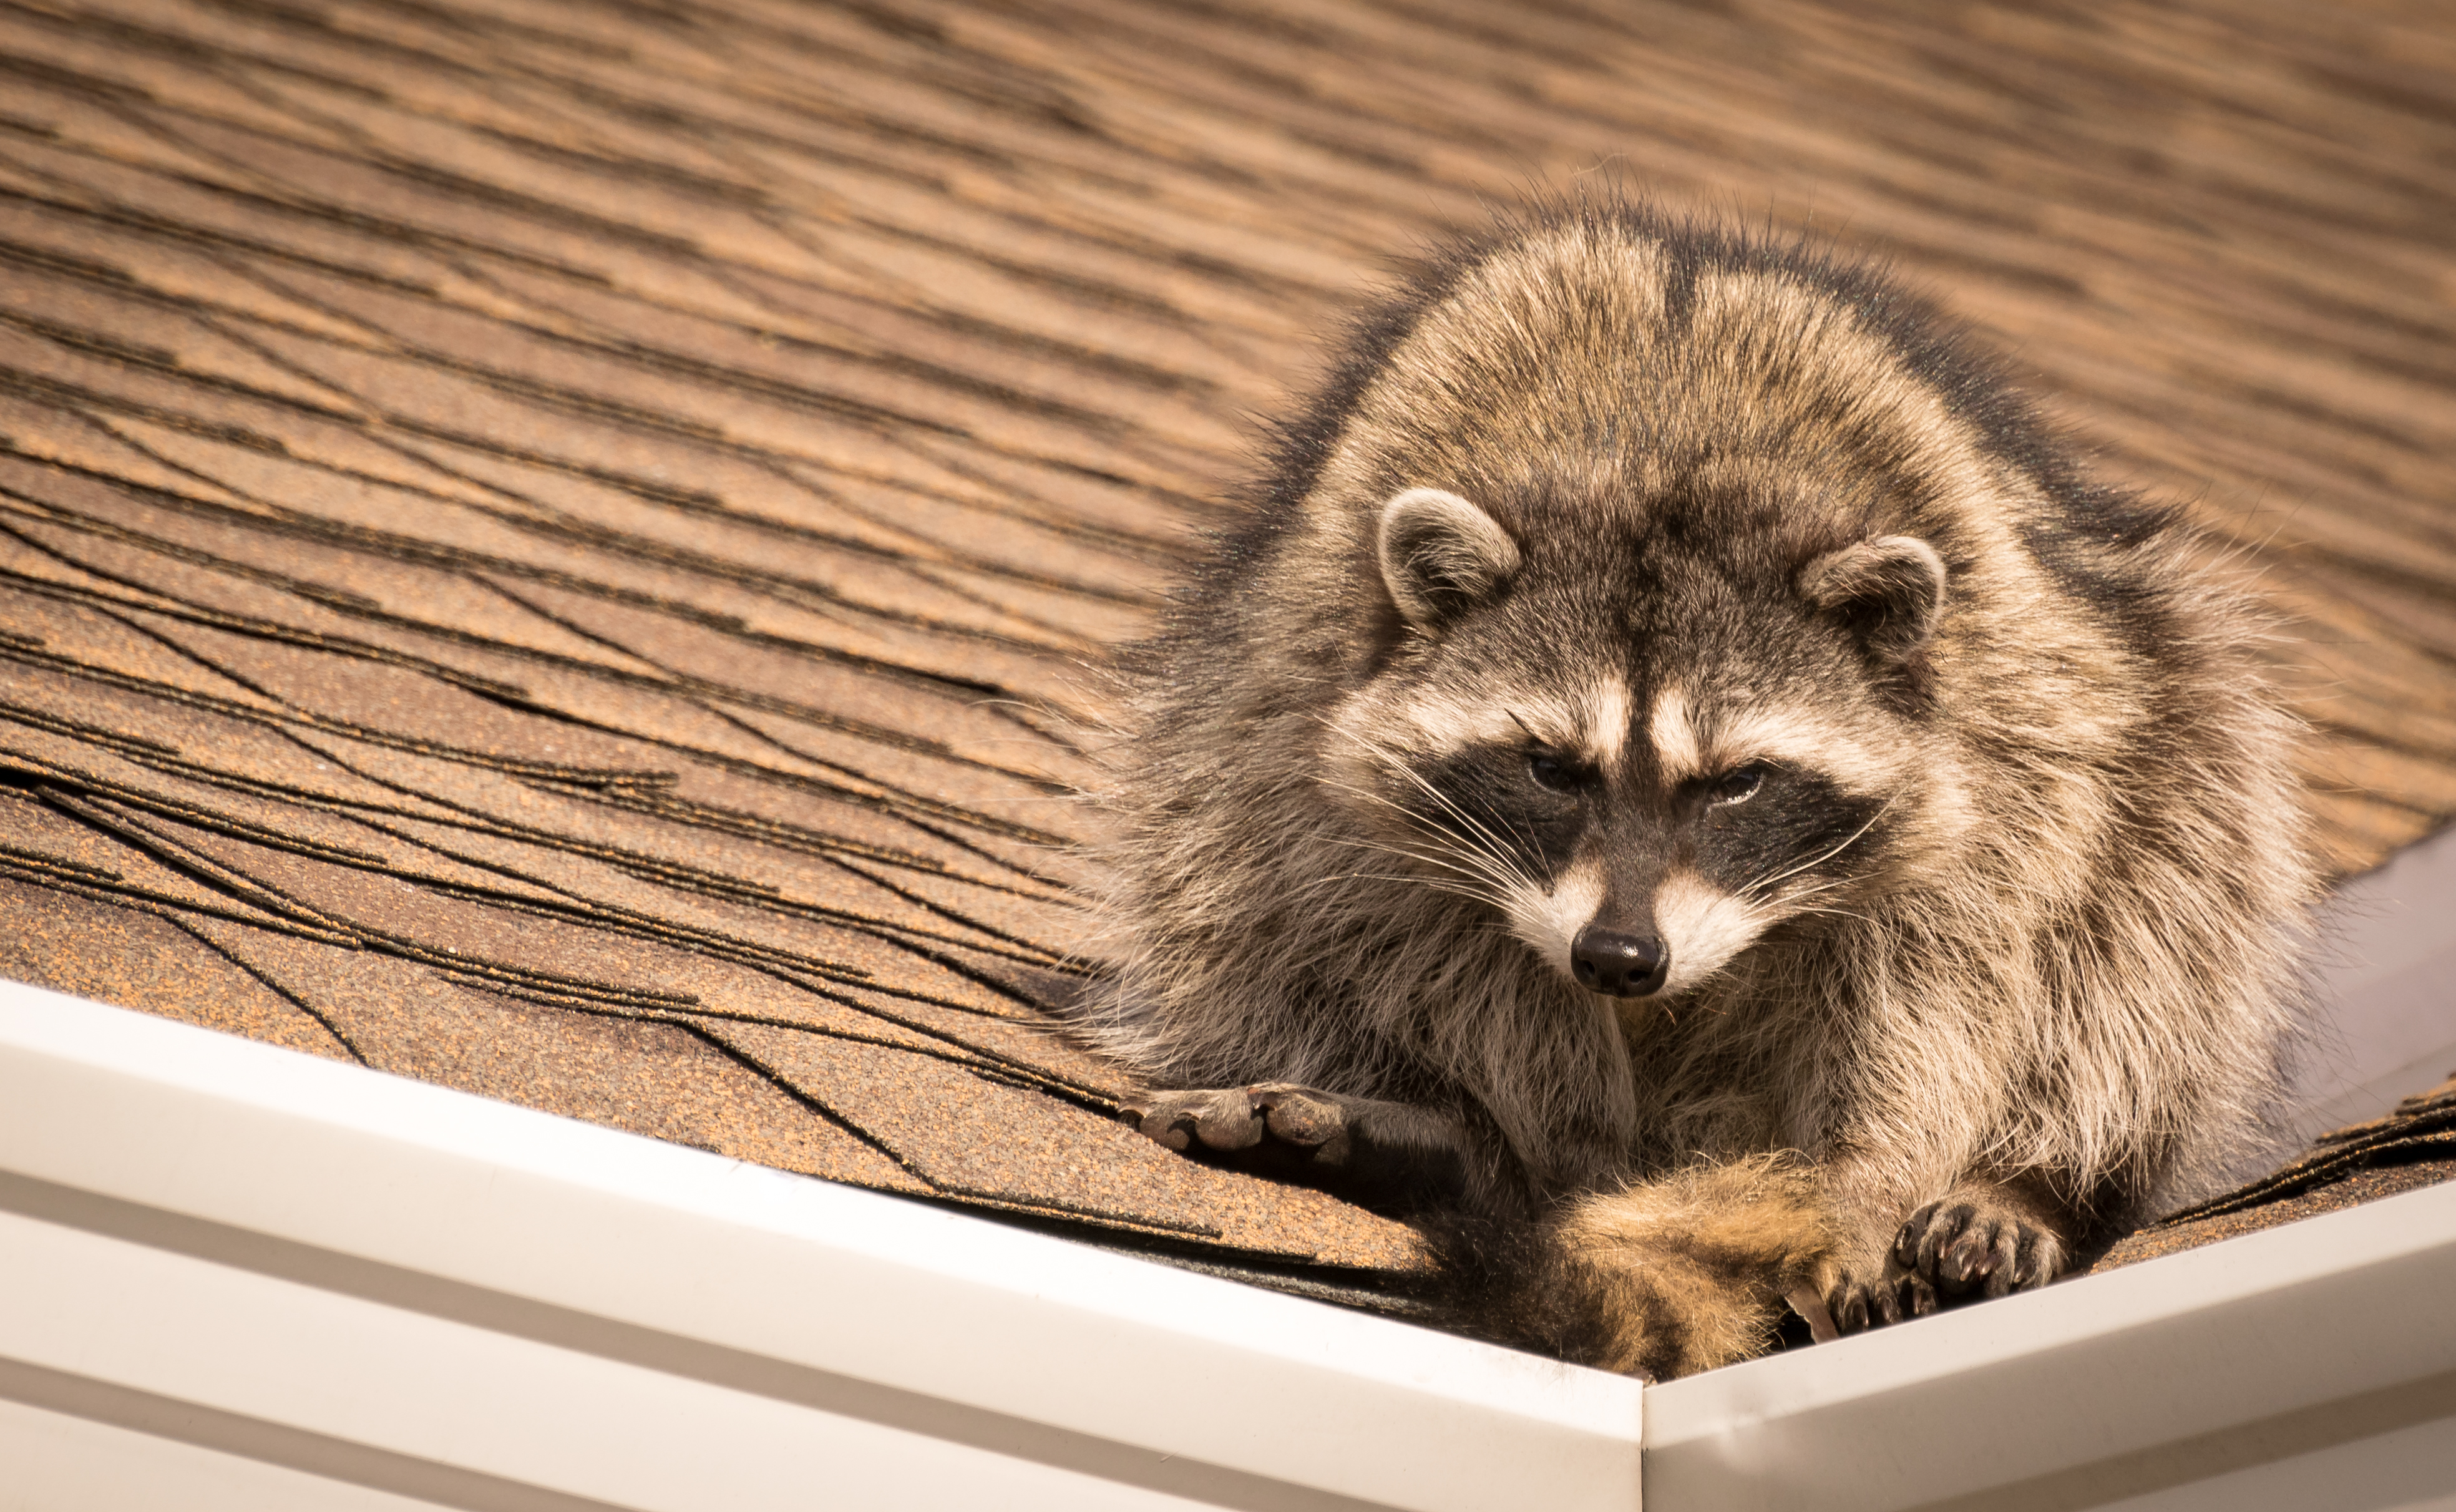 A raccoon perched on the corner of a roof.